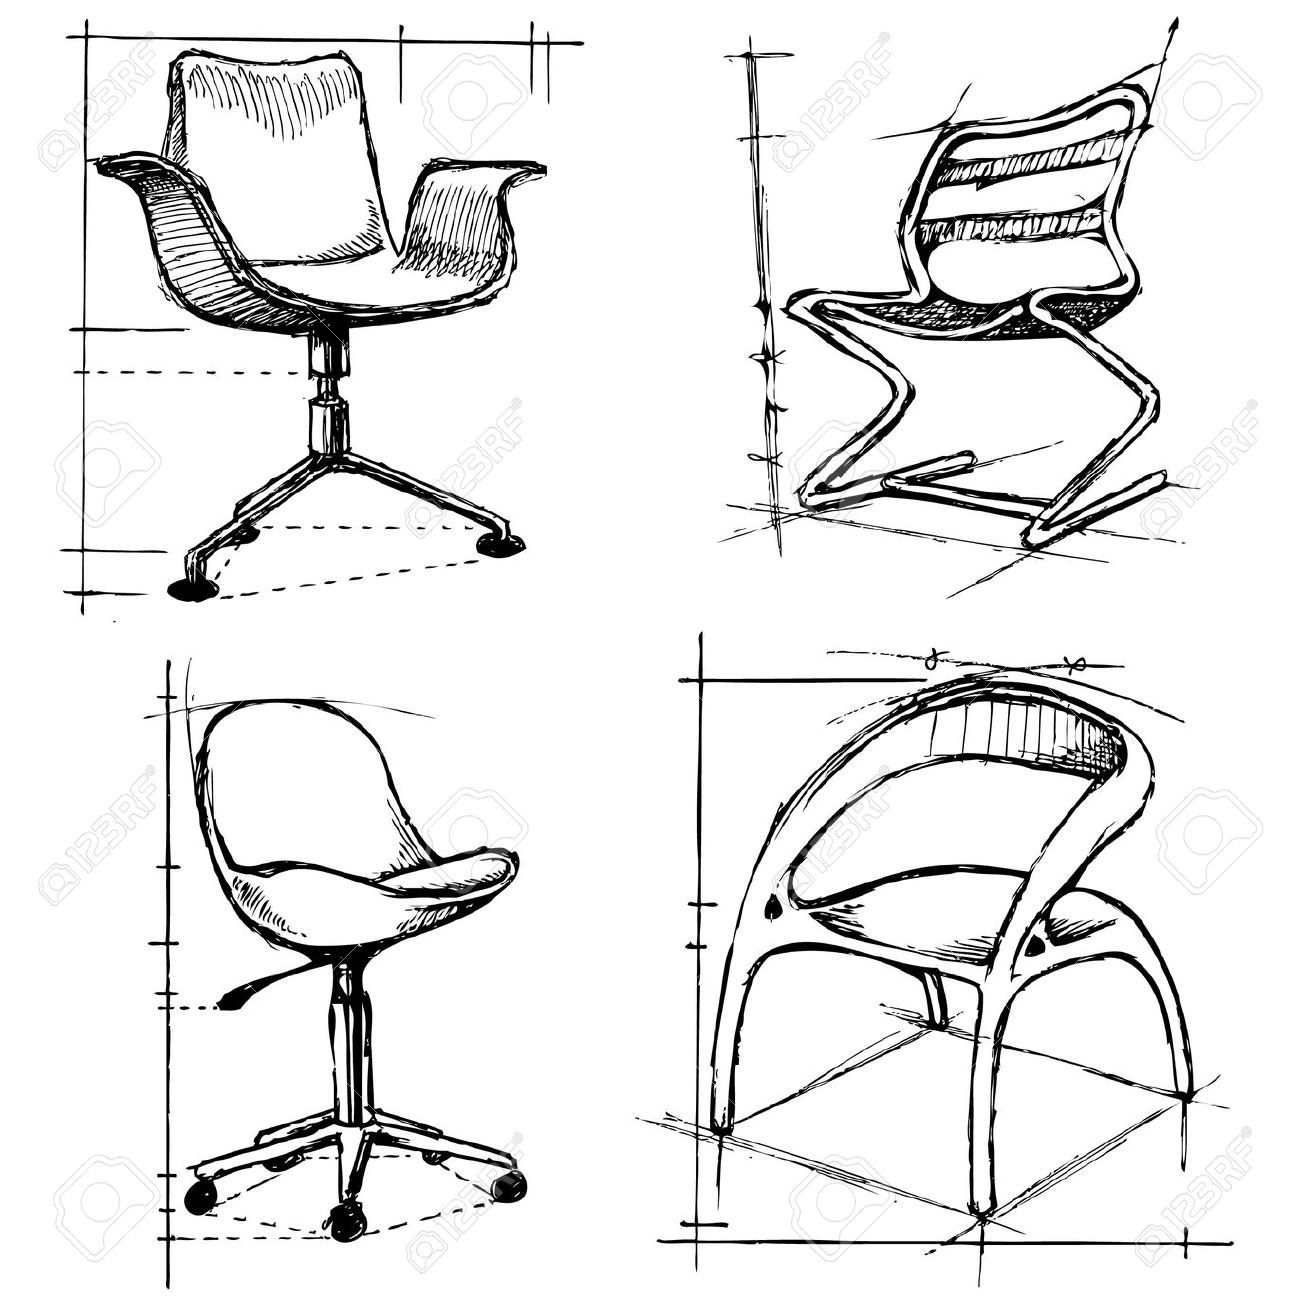 chairs drawings royalty free cliparts vectors and stock